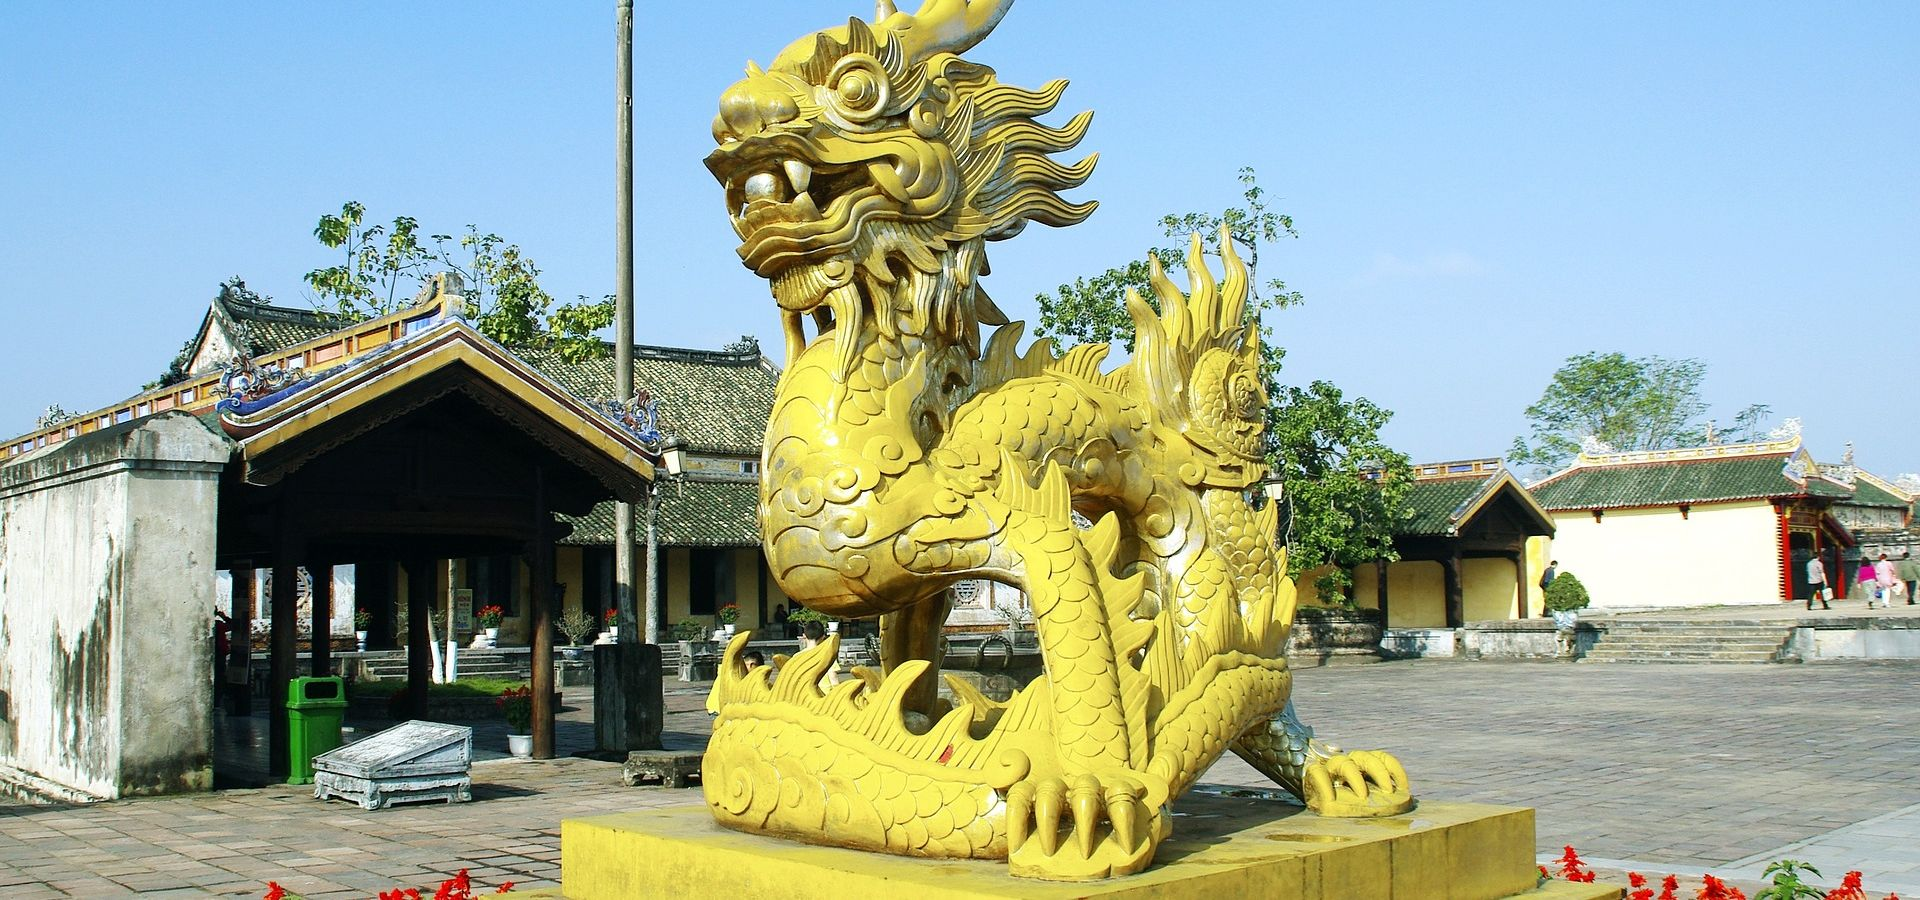 A statue of a yellow dragon